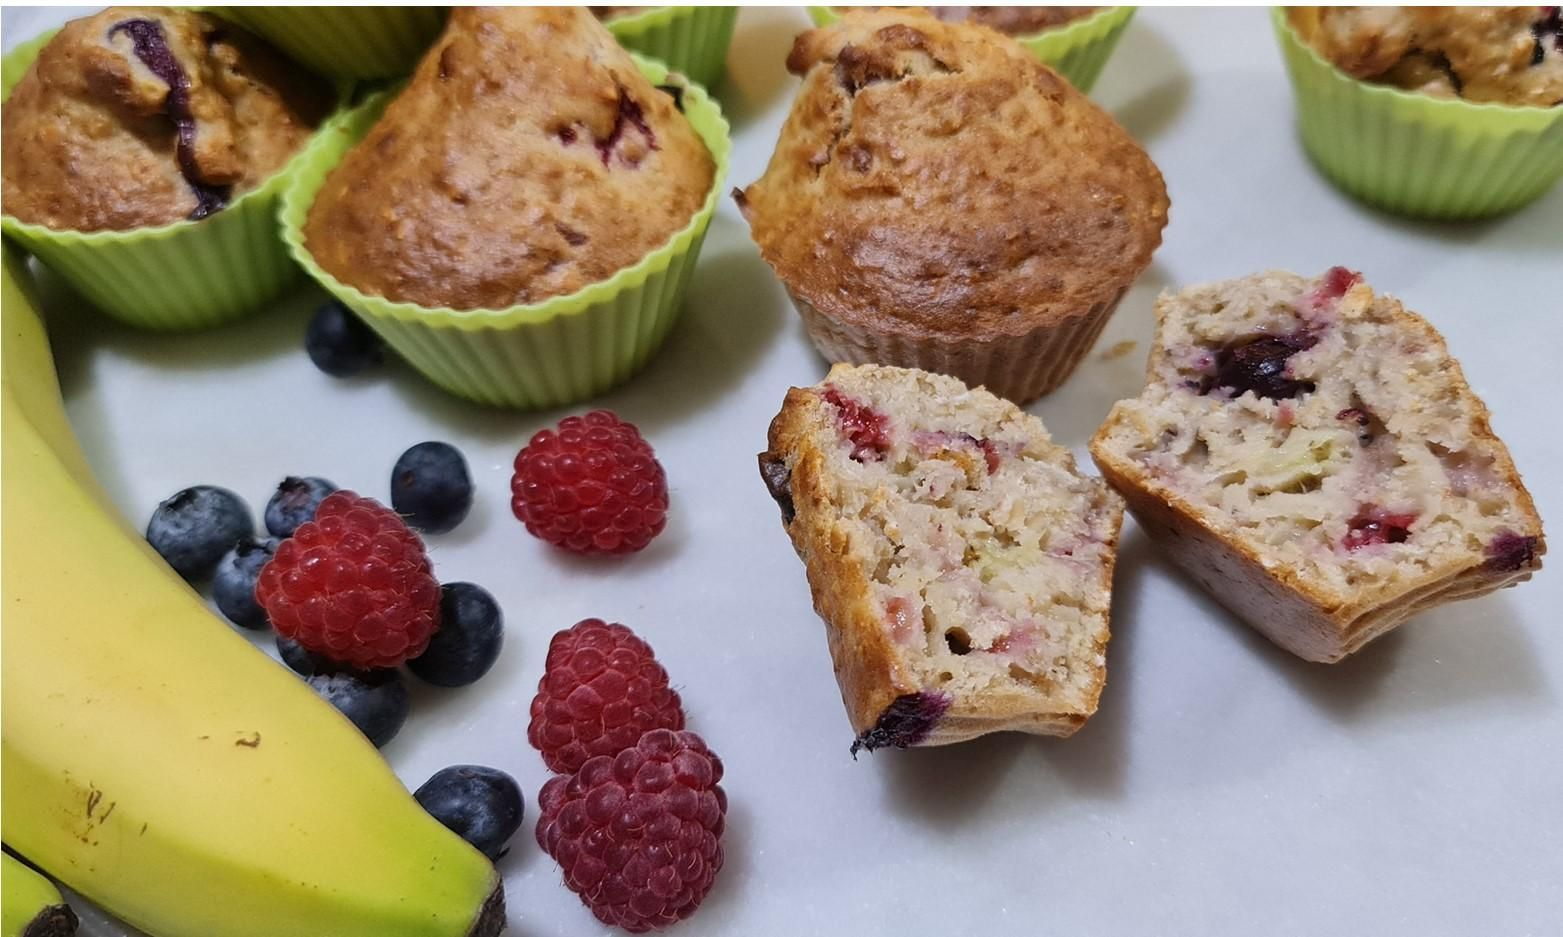 Nadiya Hussain's Very Berry Breakfast Muffins Recipe